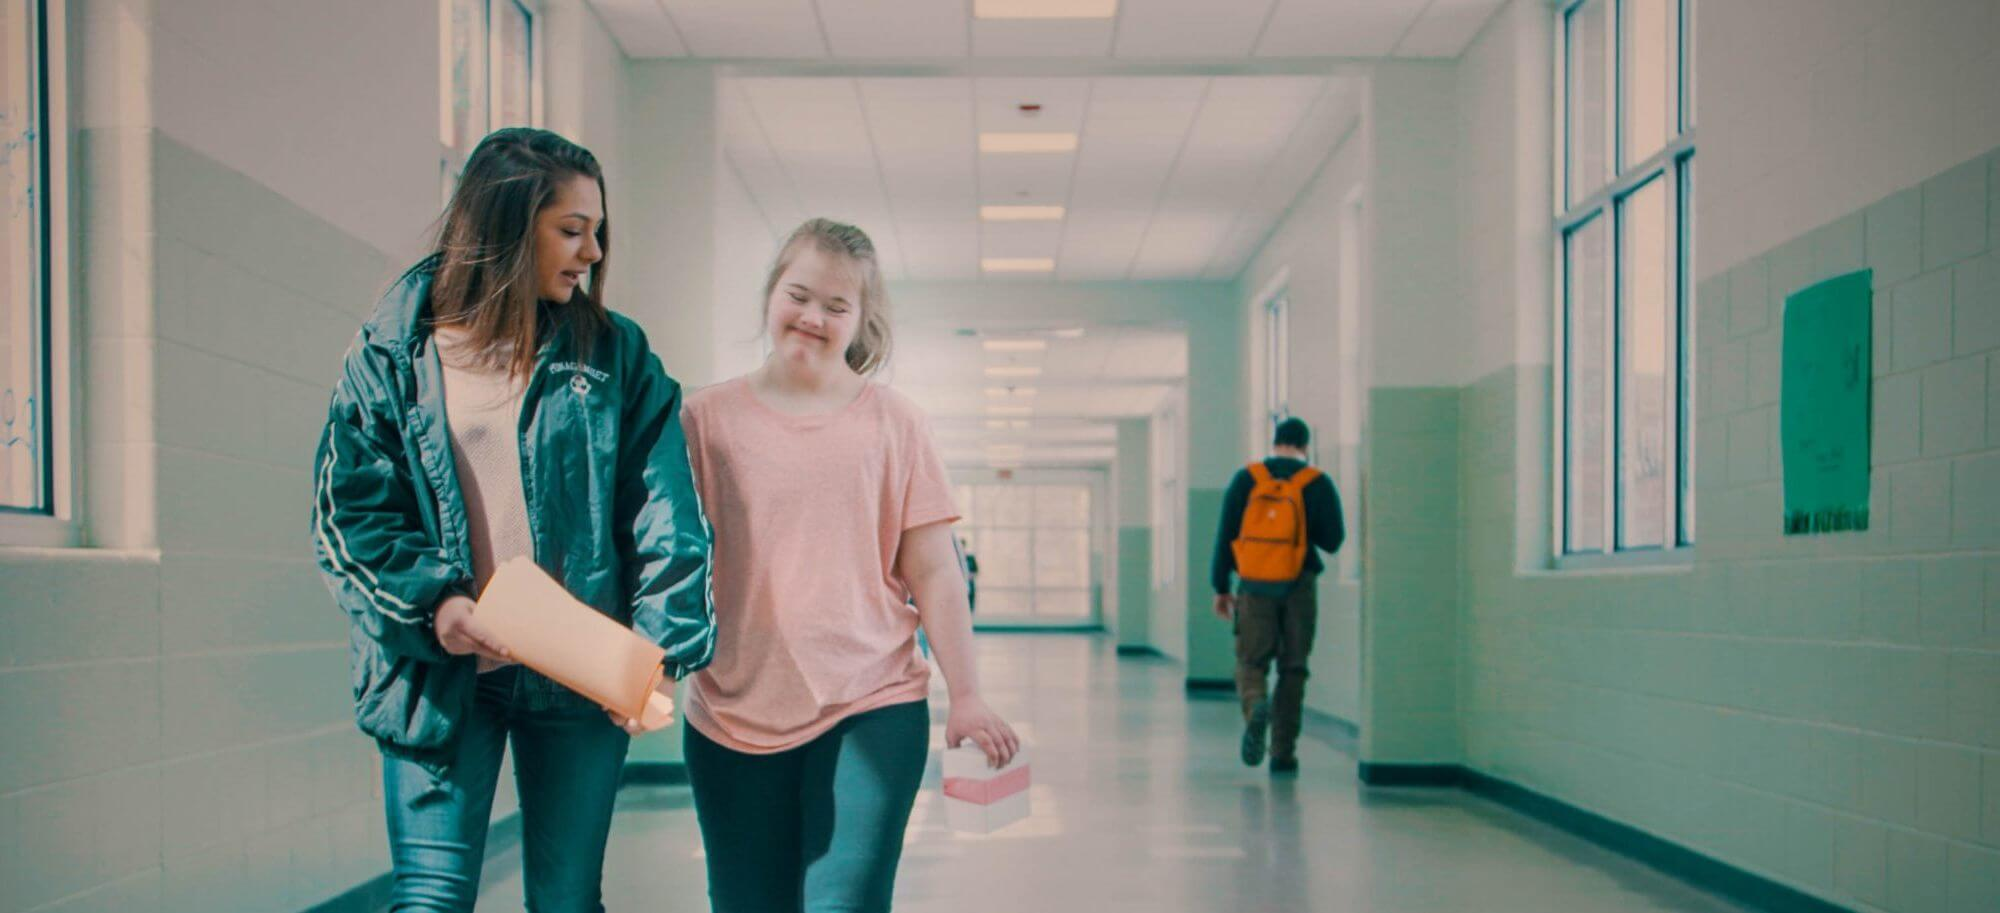 Emily and Kate walking down the school hallway.